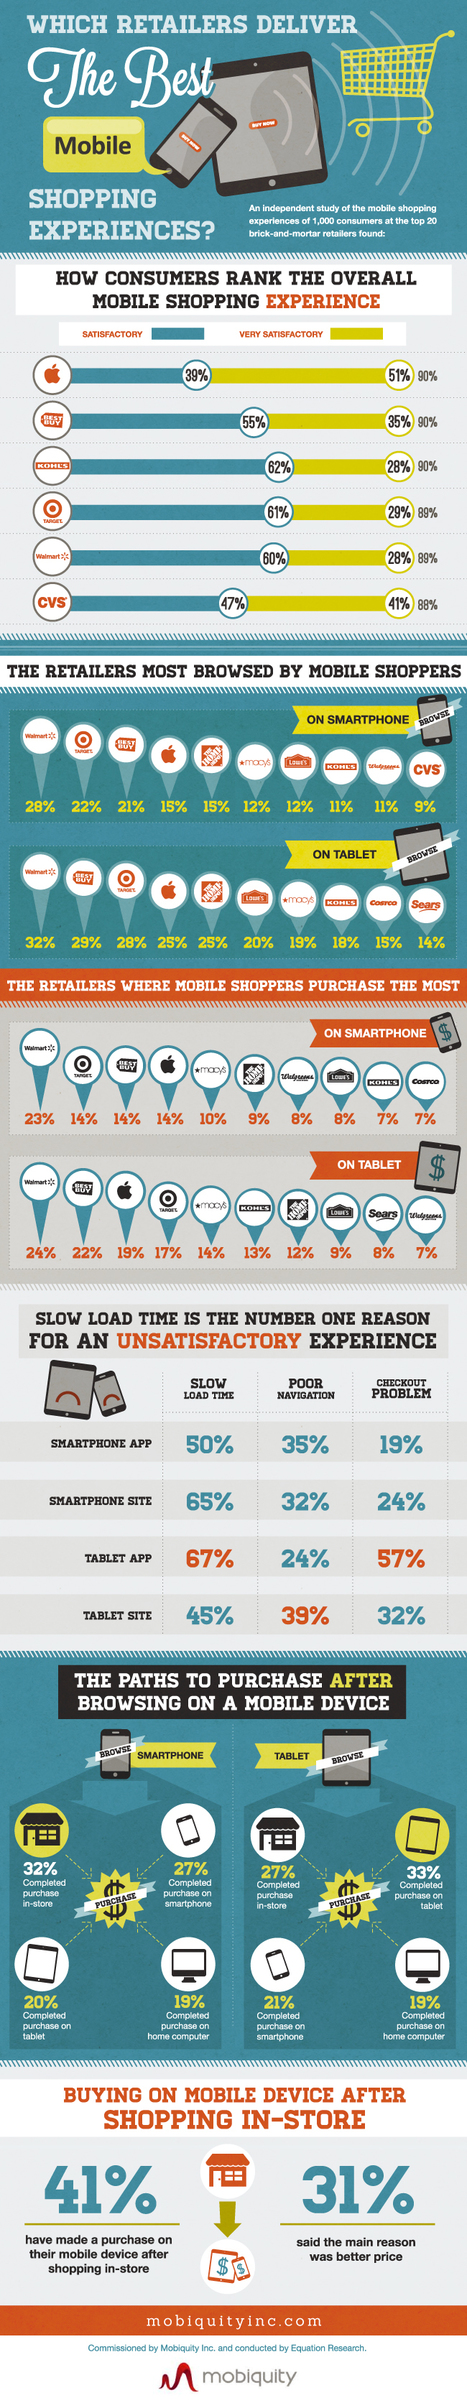 Which Retailers Deliver The Best Mobile Shopping Experience? [Infographic] | Integrated Brand | Scoop.it